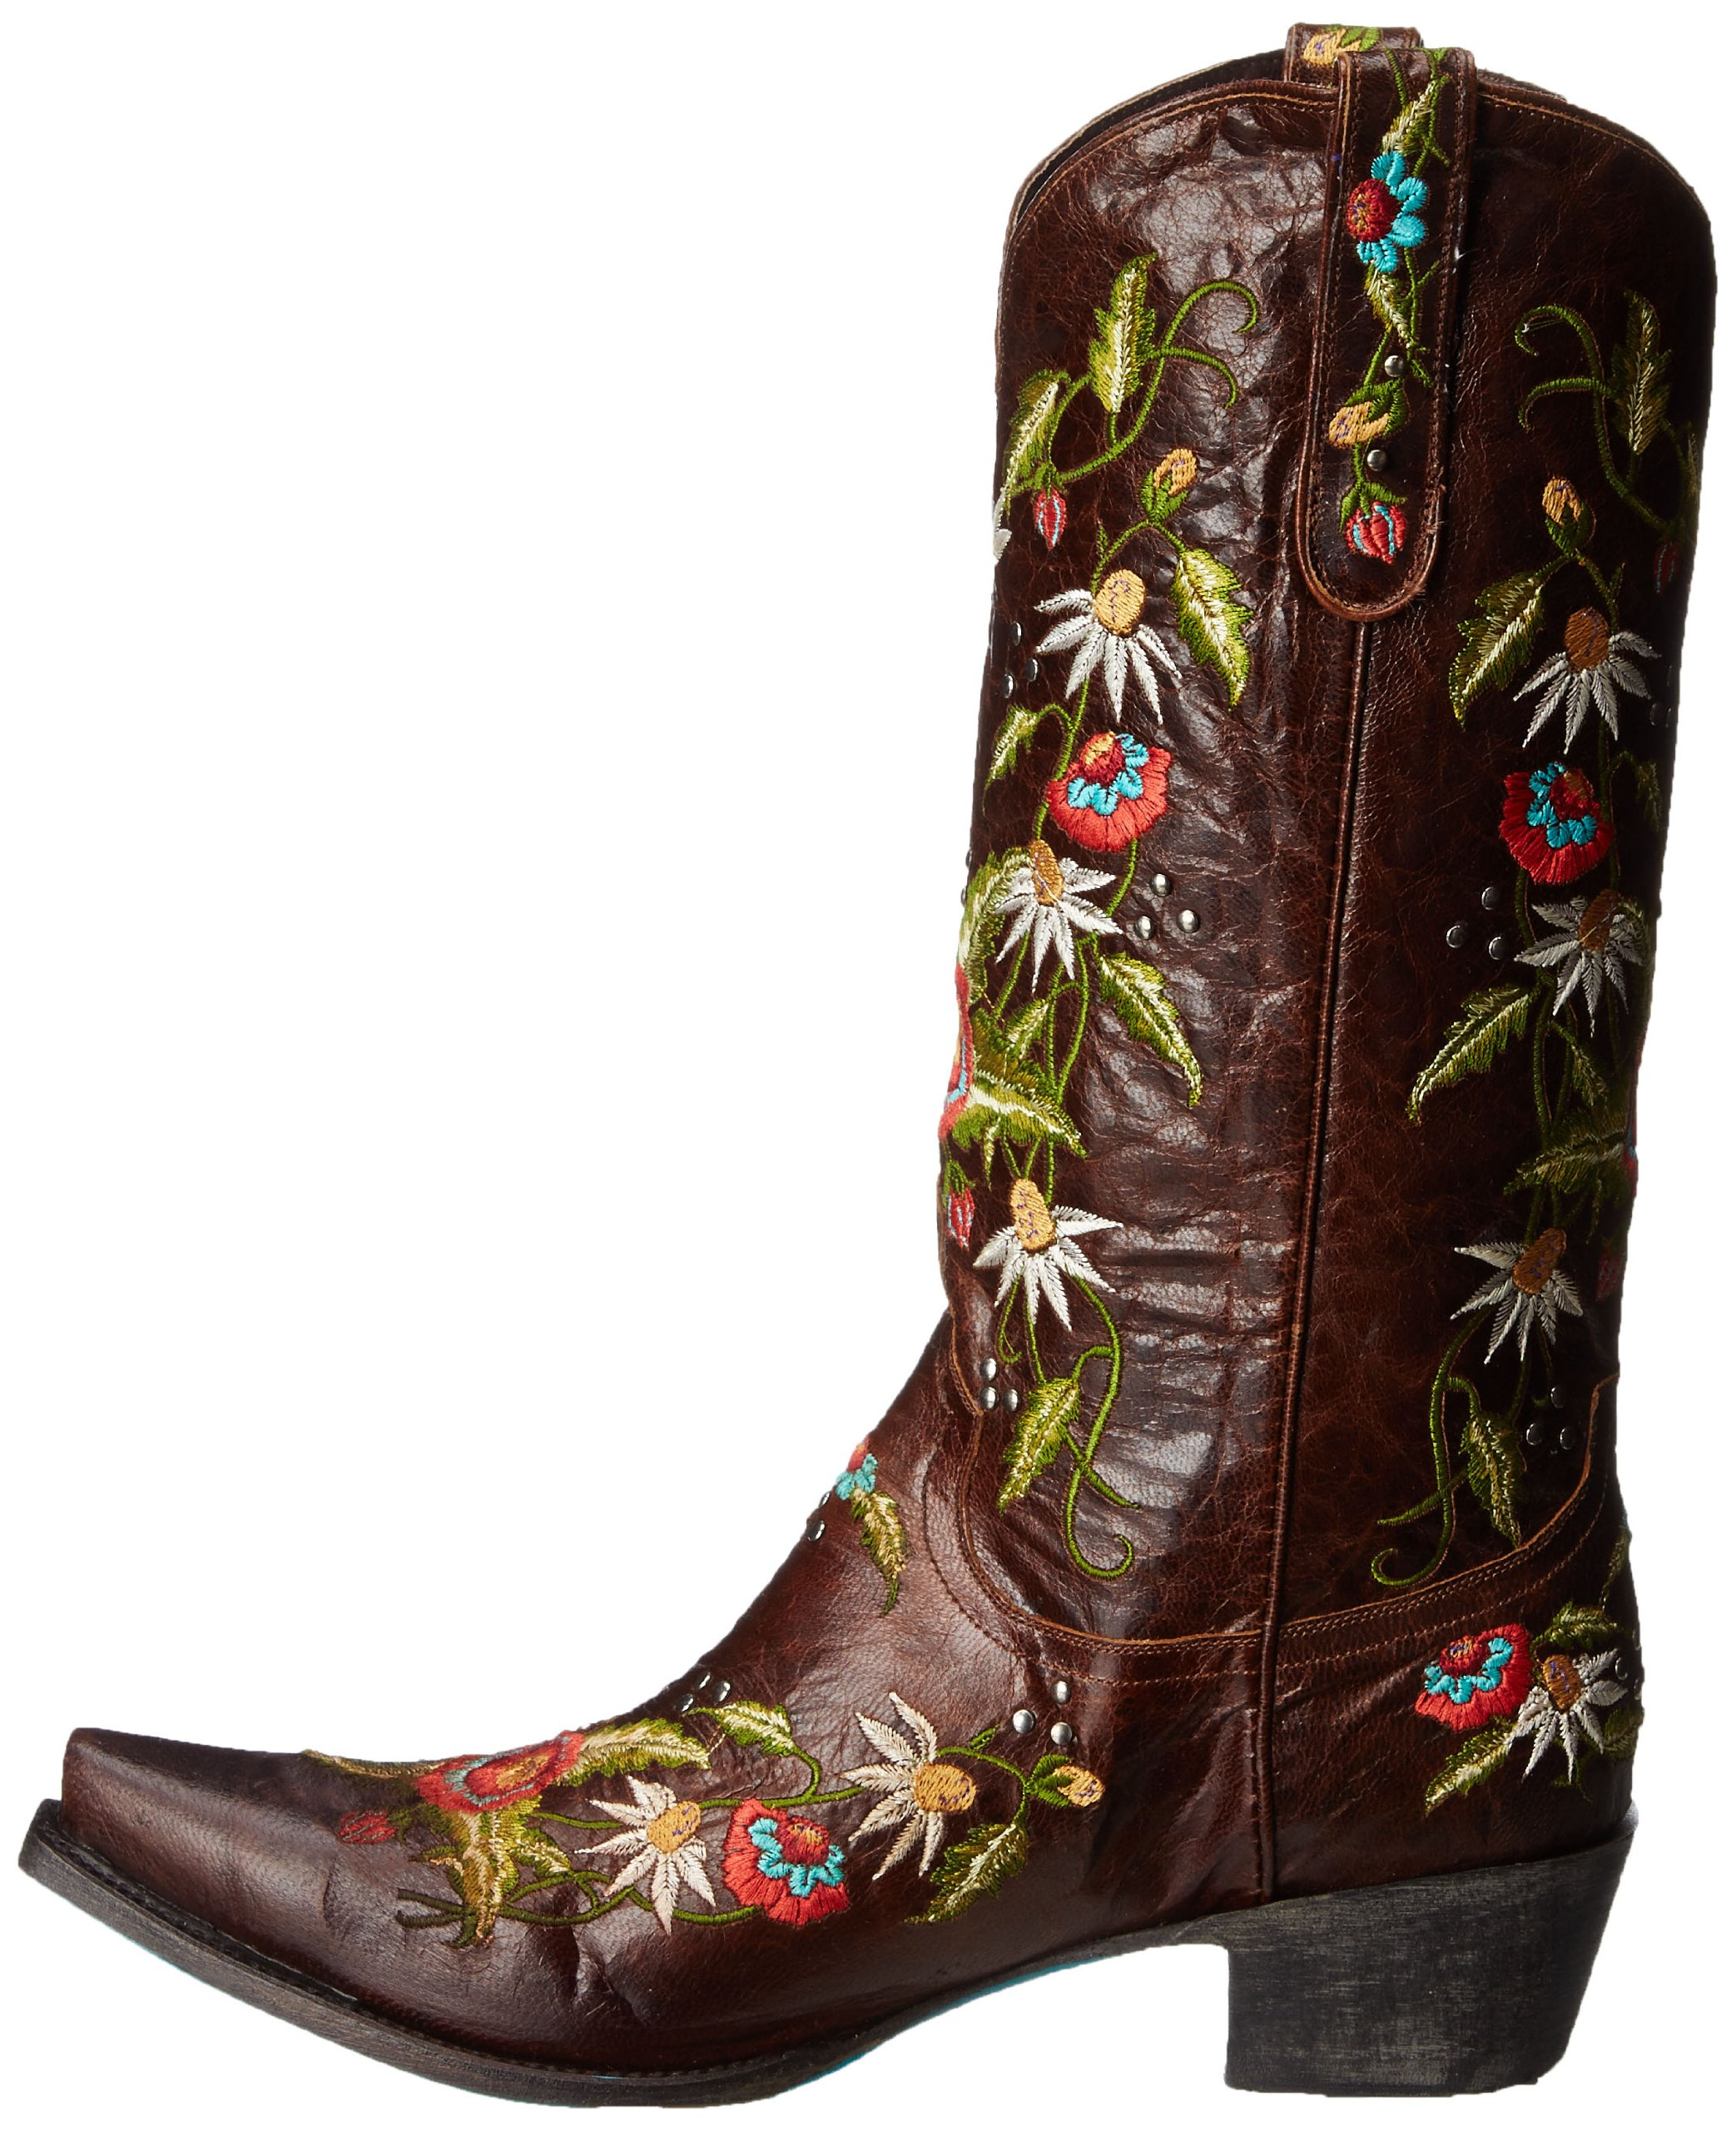 Lane Boots Women's Summer Bounty Studs Western Boot,Brown,10.5 B US by Lane Boots (Image #5)